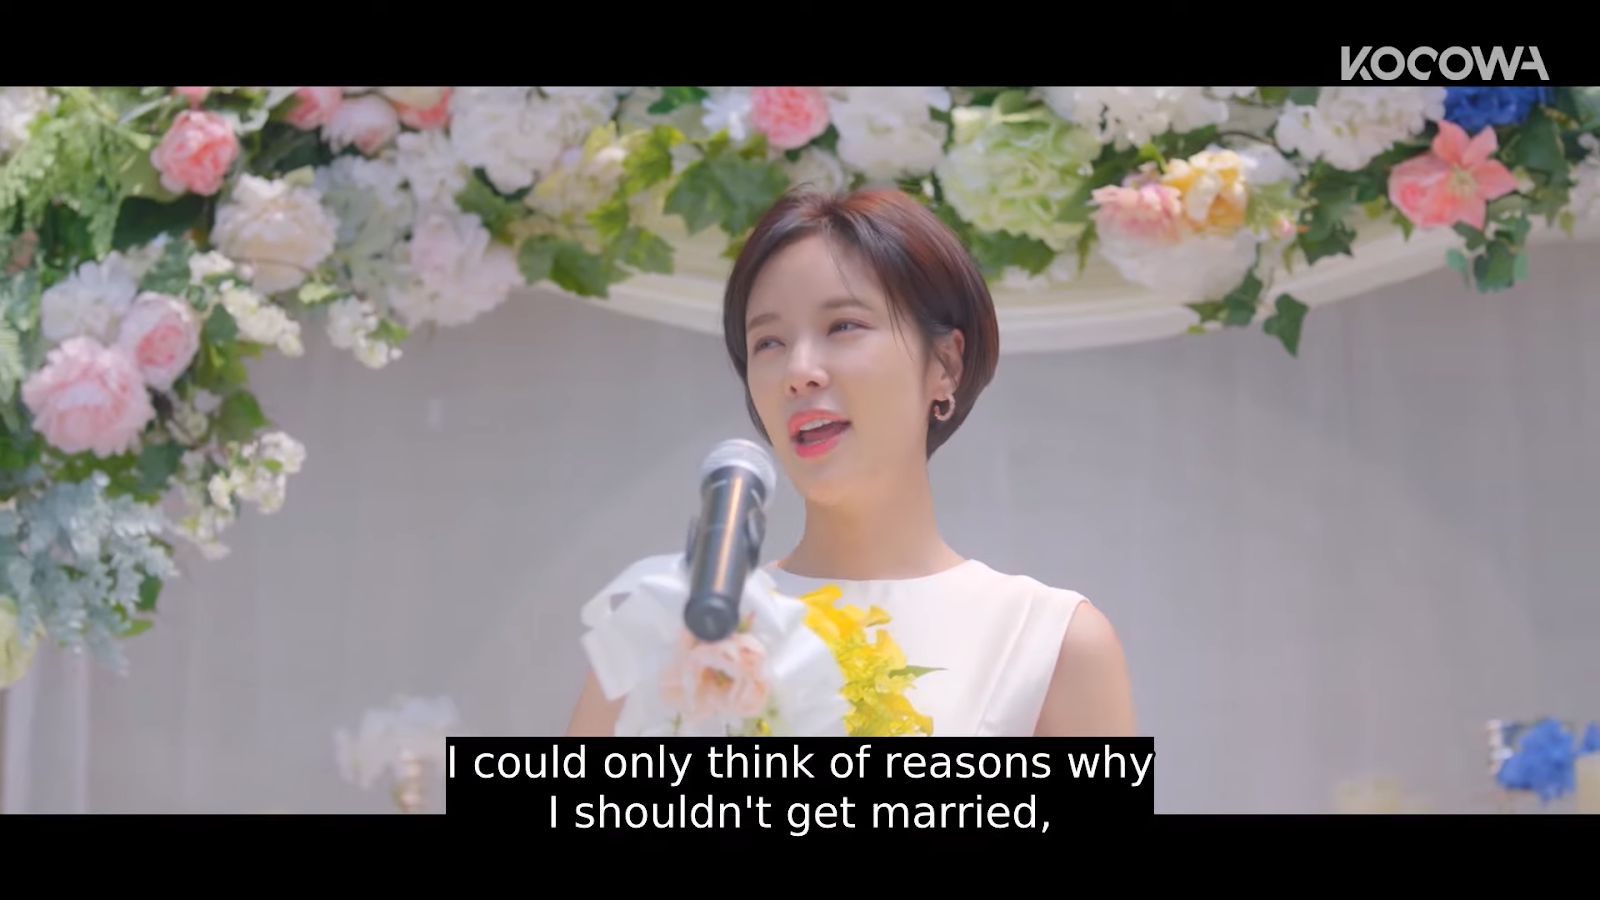 I could only think of reasons i shouldn't get married